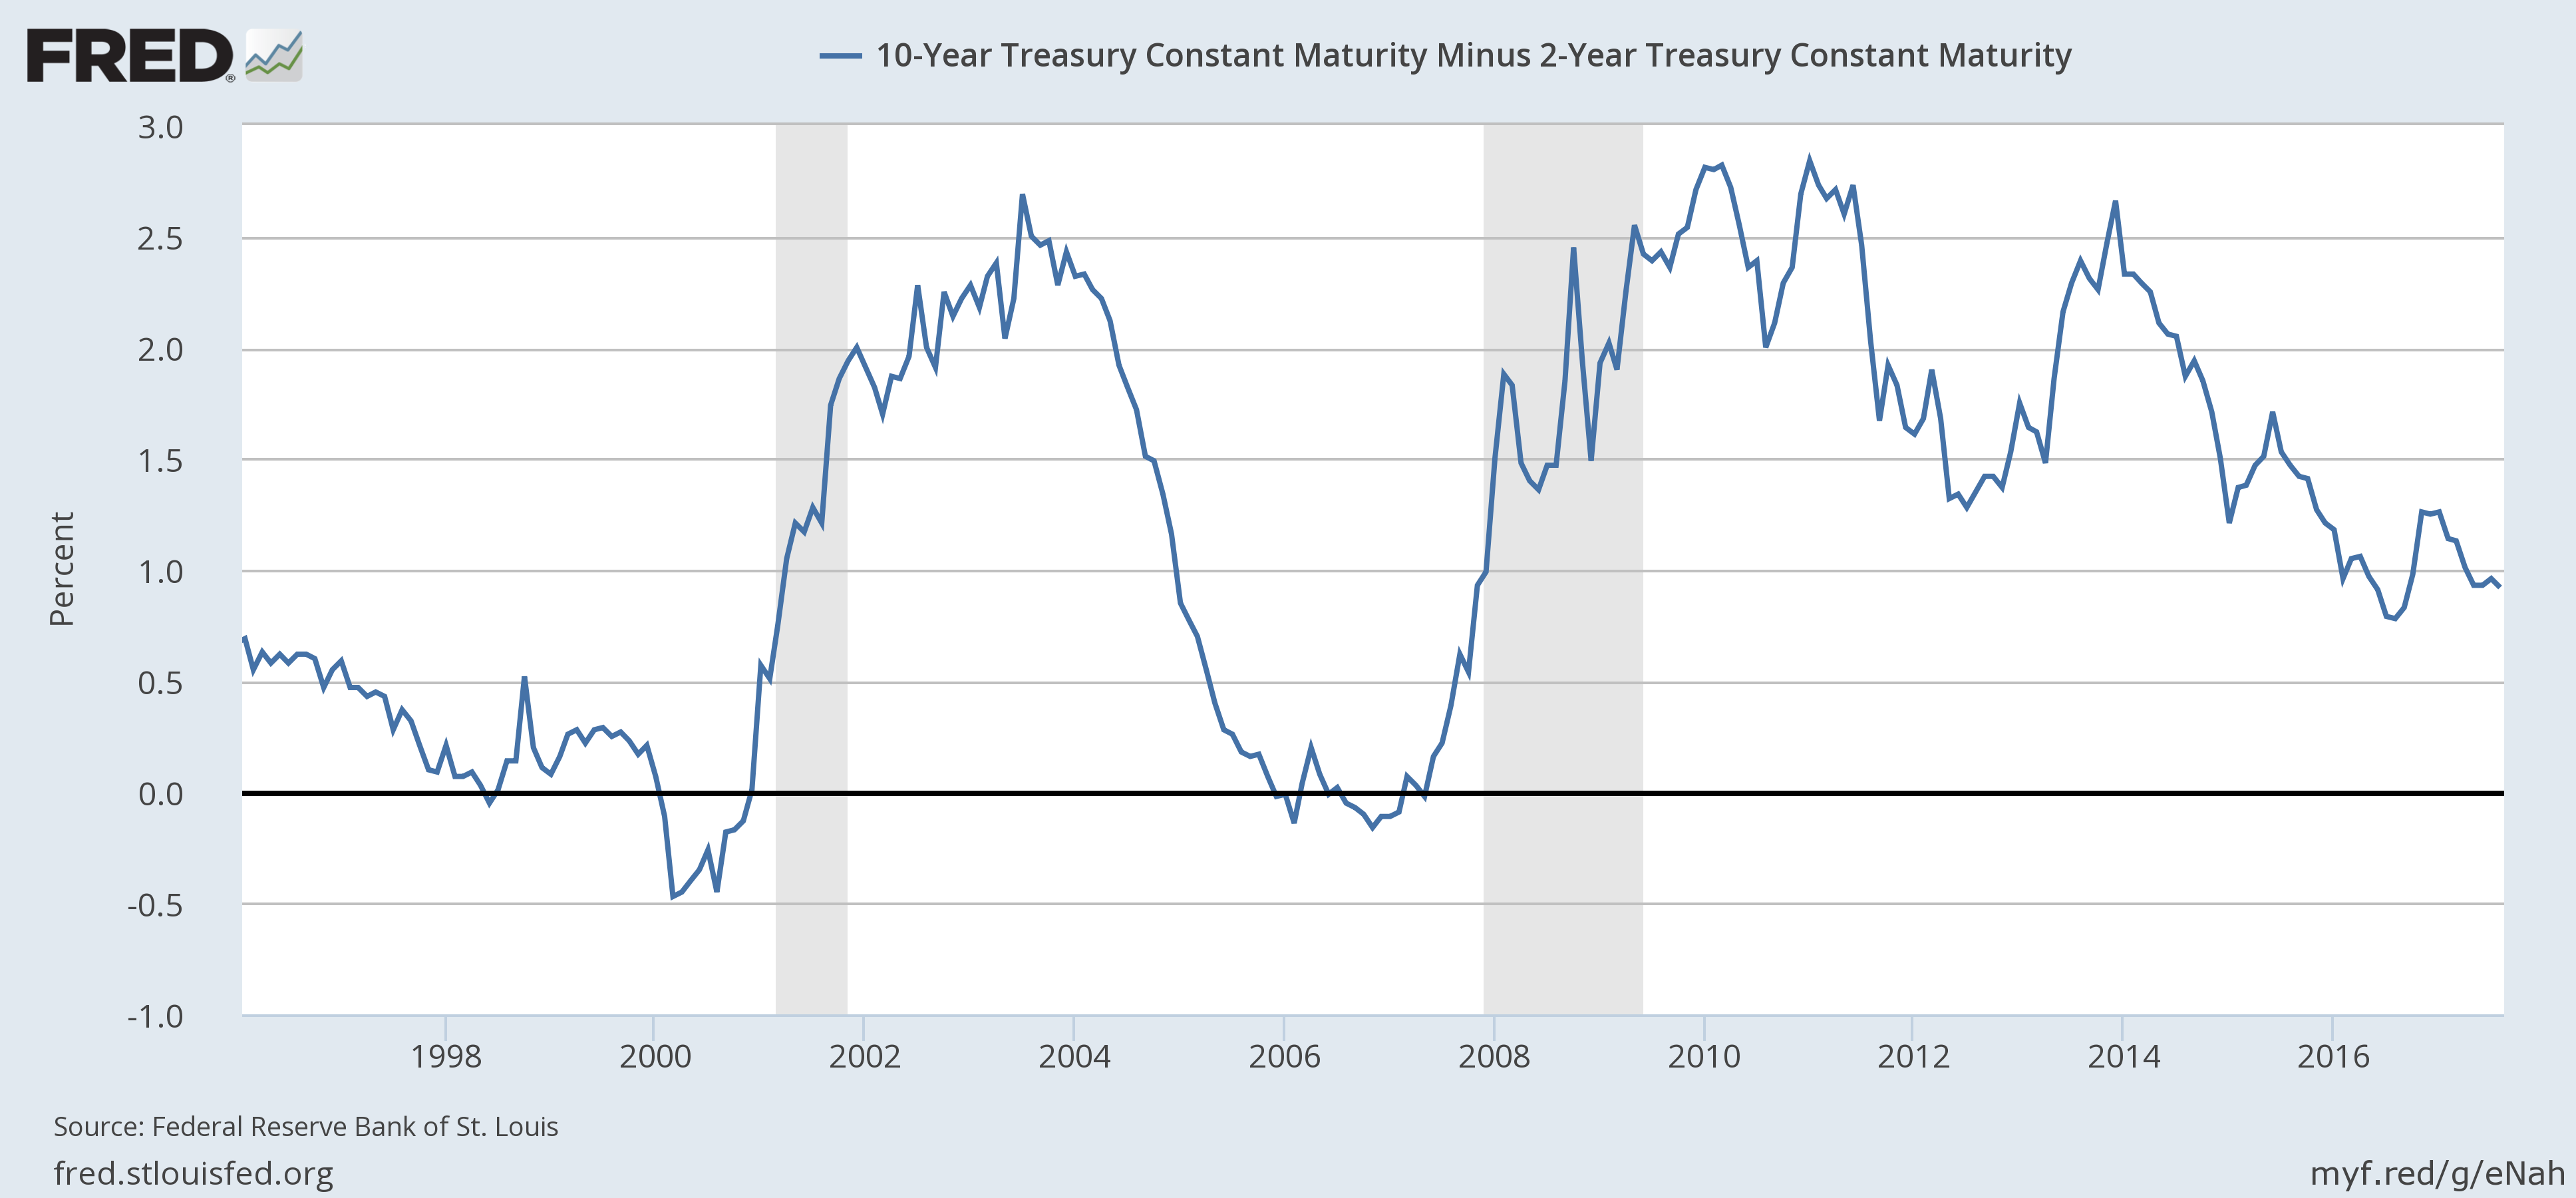 U.S. 10 Year Treasury Constant Maturity, 1998-2016